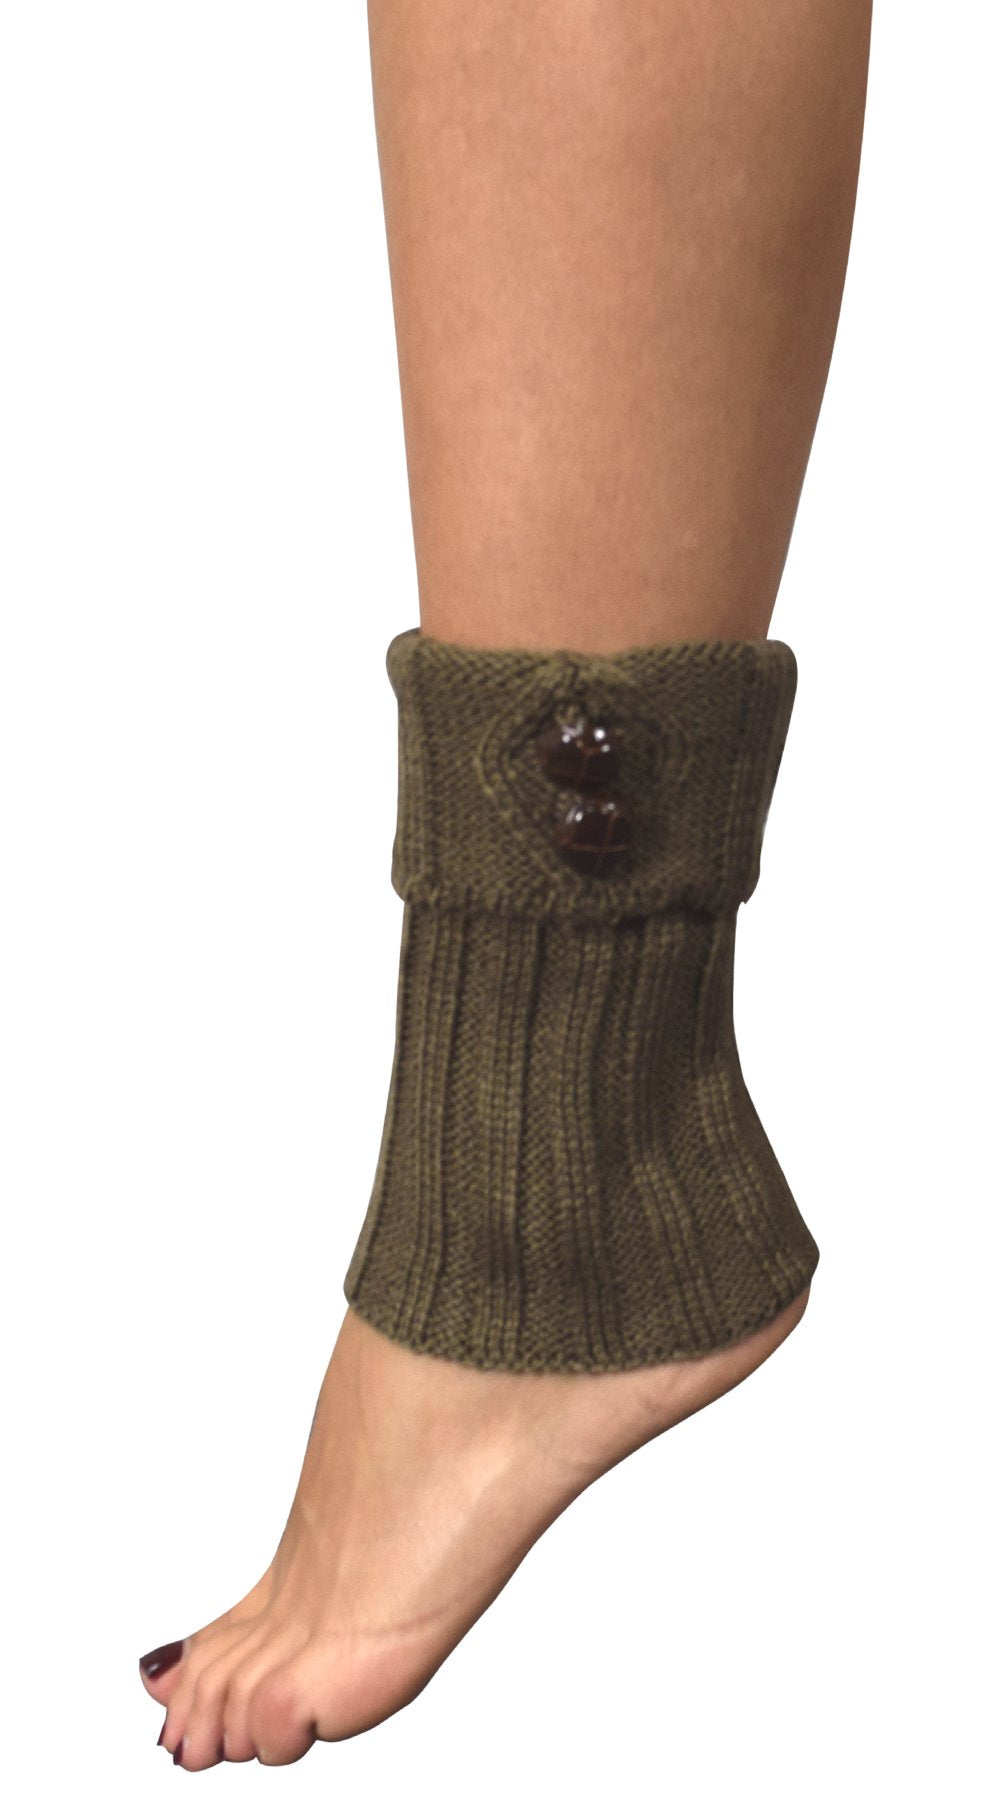 B1410-Button-LegWarm